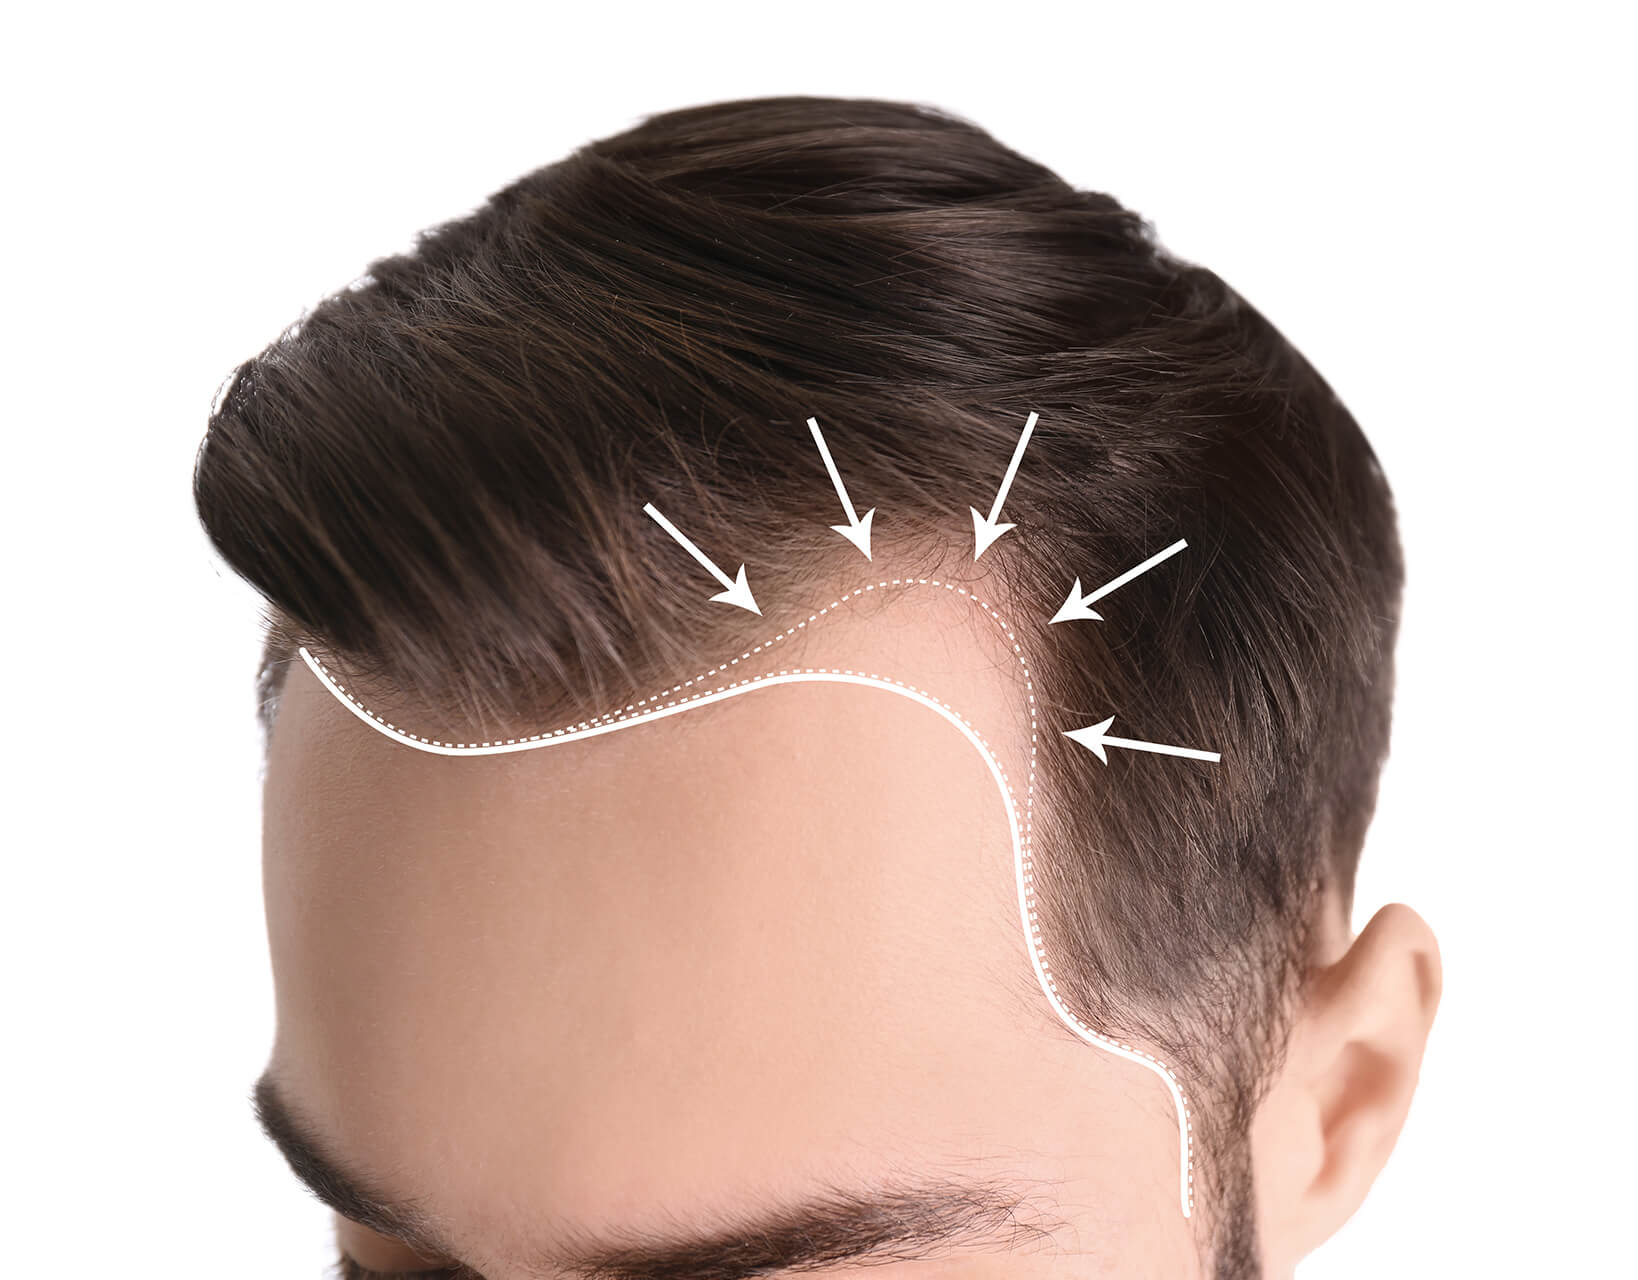 arrows pointing to temple hair loss on a man's head